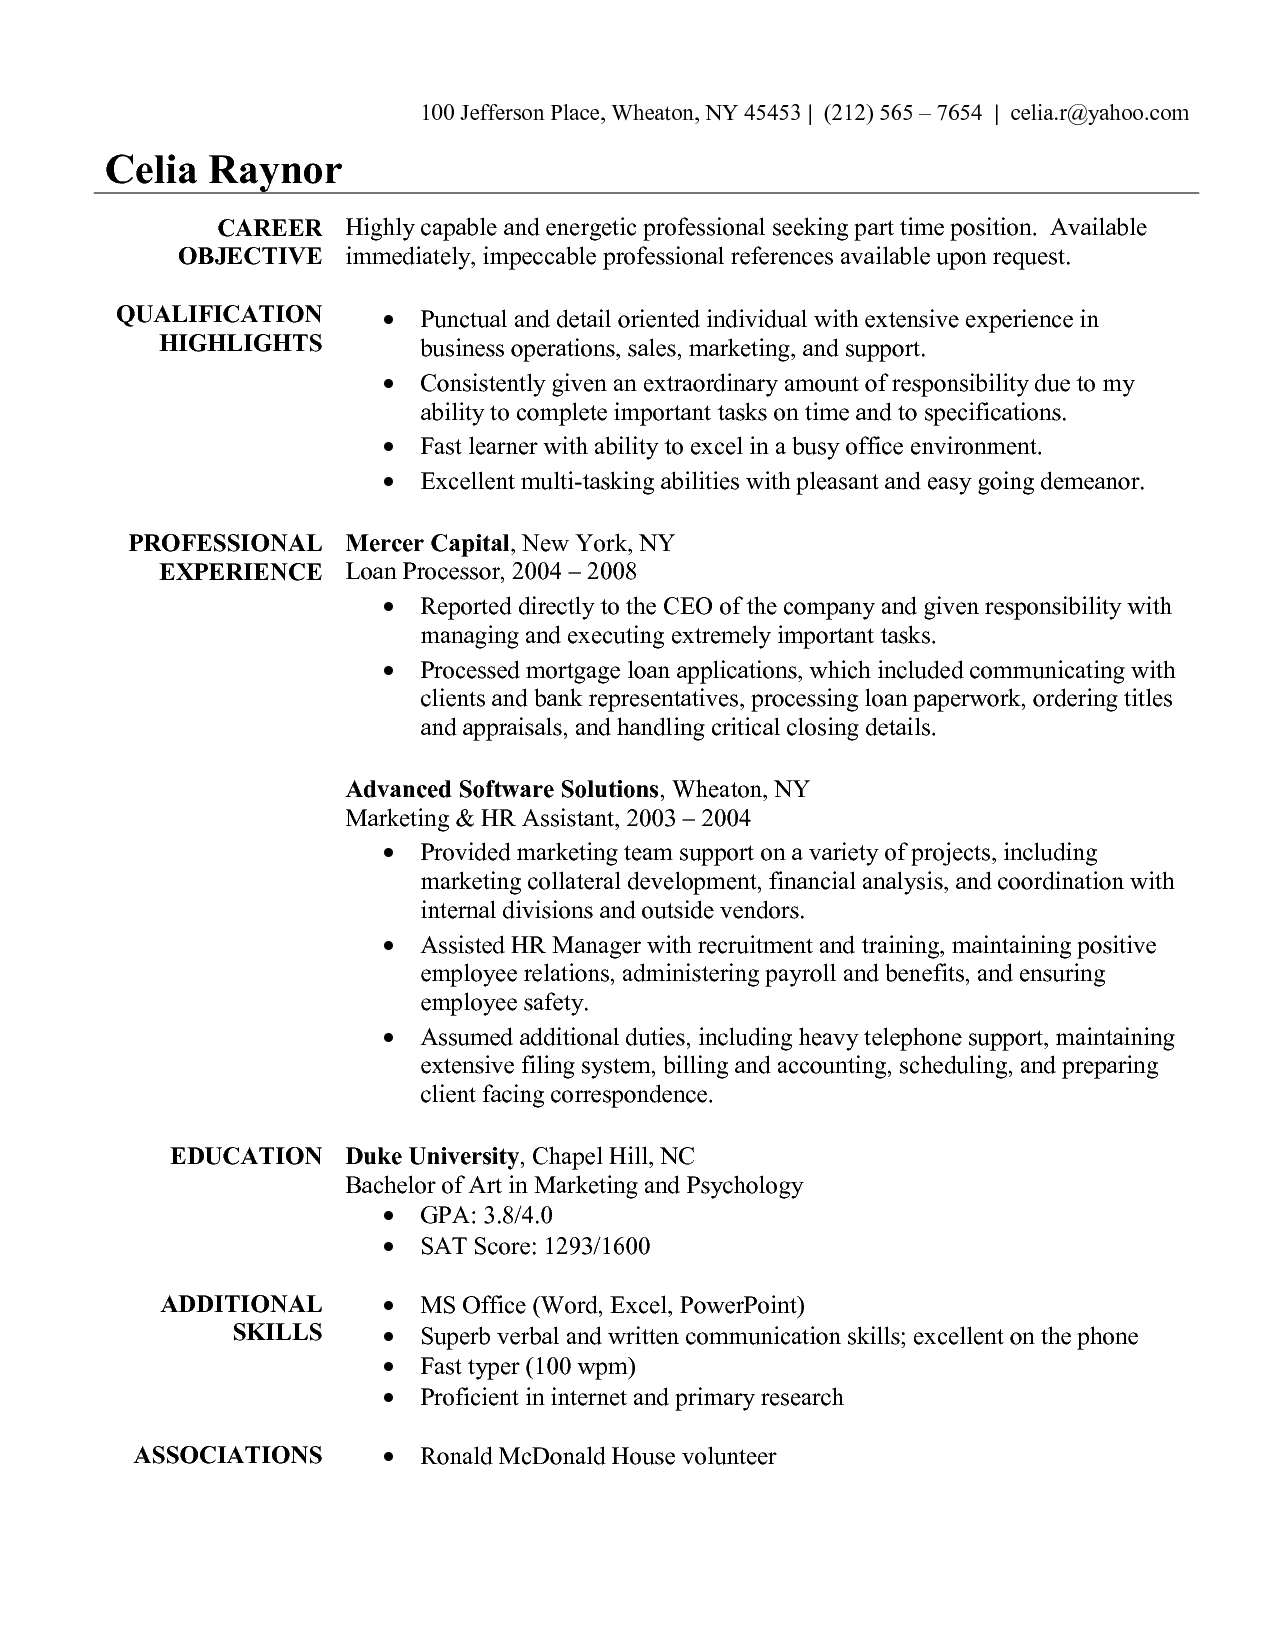 Medical Administrative Assistant Resume Samples Resume Template Ideas